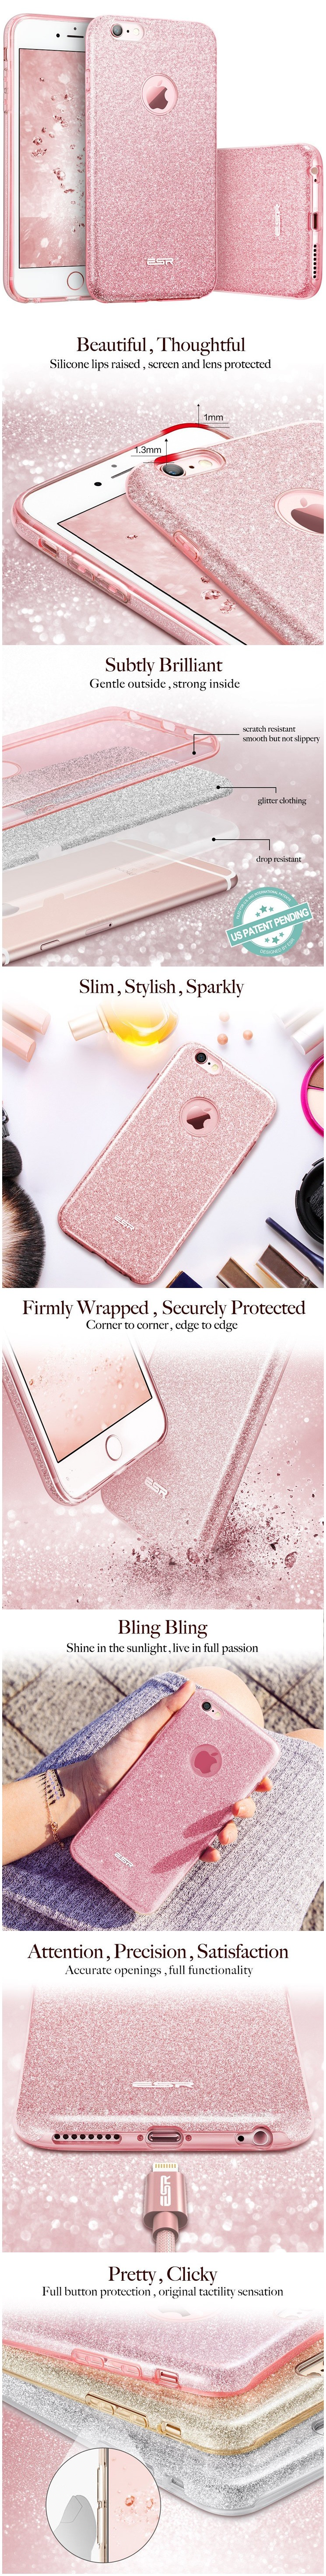 81d2a8607ed10 Cell Phone Accessories · Rose Gold · Slim · iPhone 6 Case